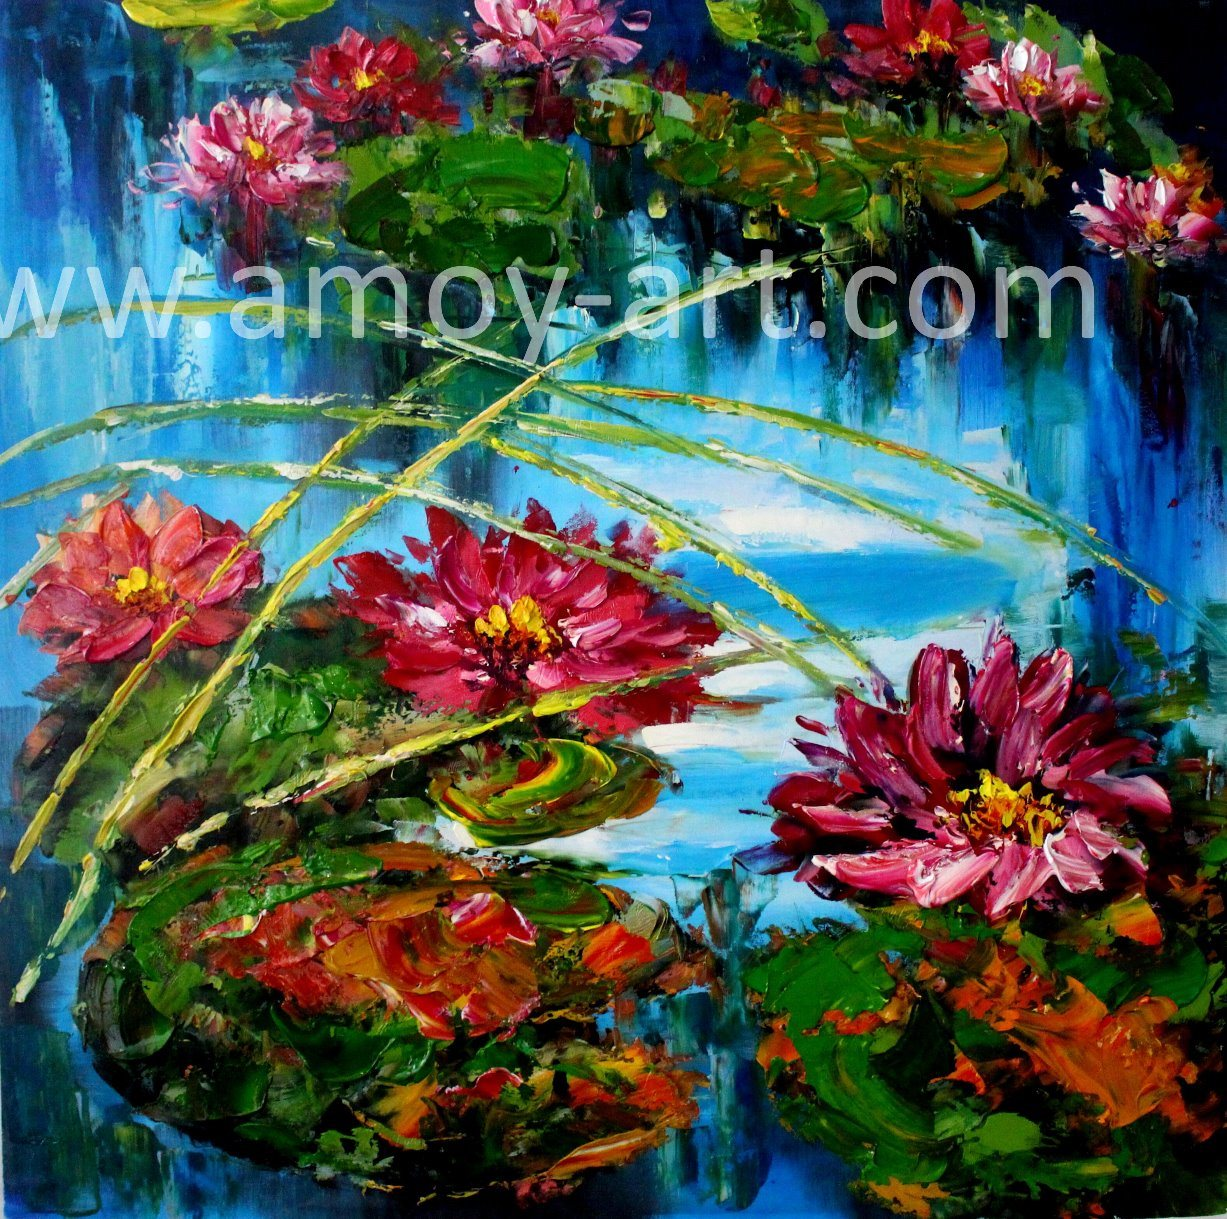 China stretched lotus flower oil paintings for home decoration china stretched lotus flower oil paintings for home decoration china handmade paintings flower oil painting izmirmasajfo